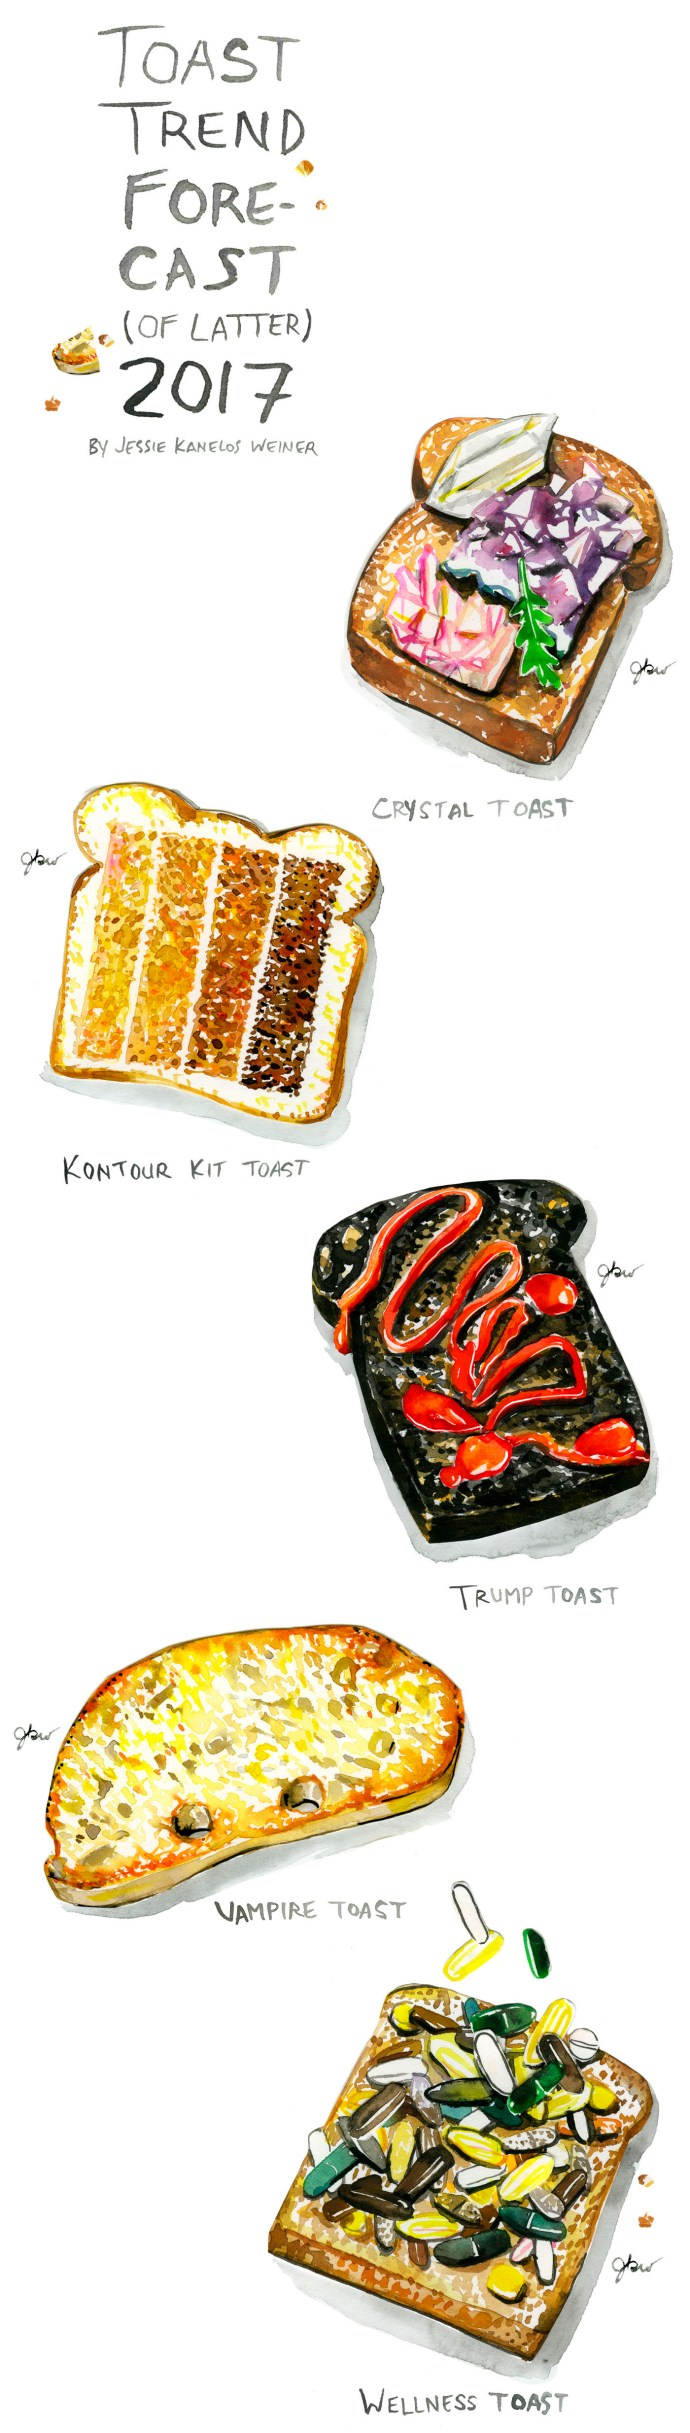 Toast trend report 2017_jkw_thefrancofly.com